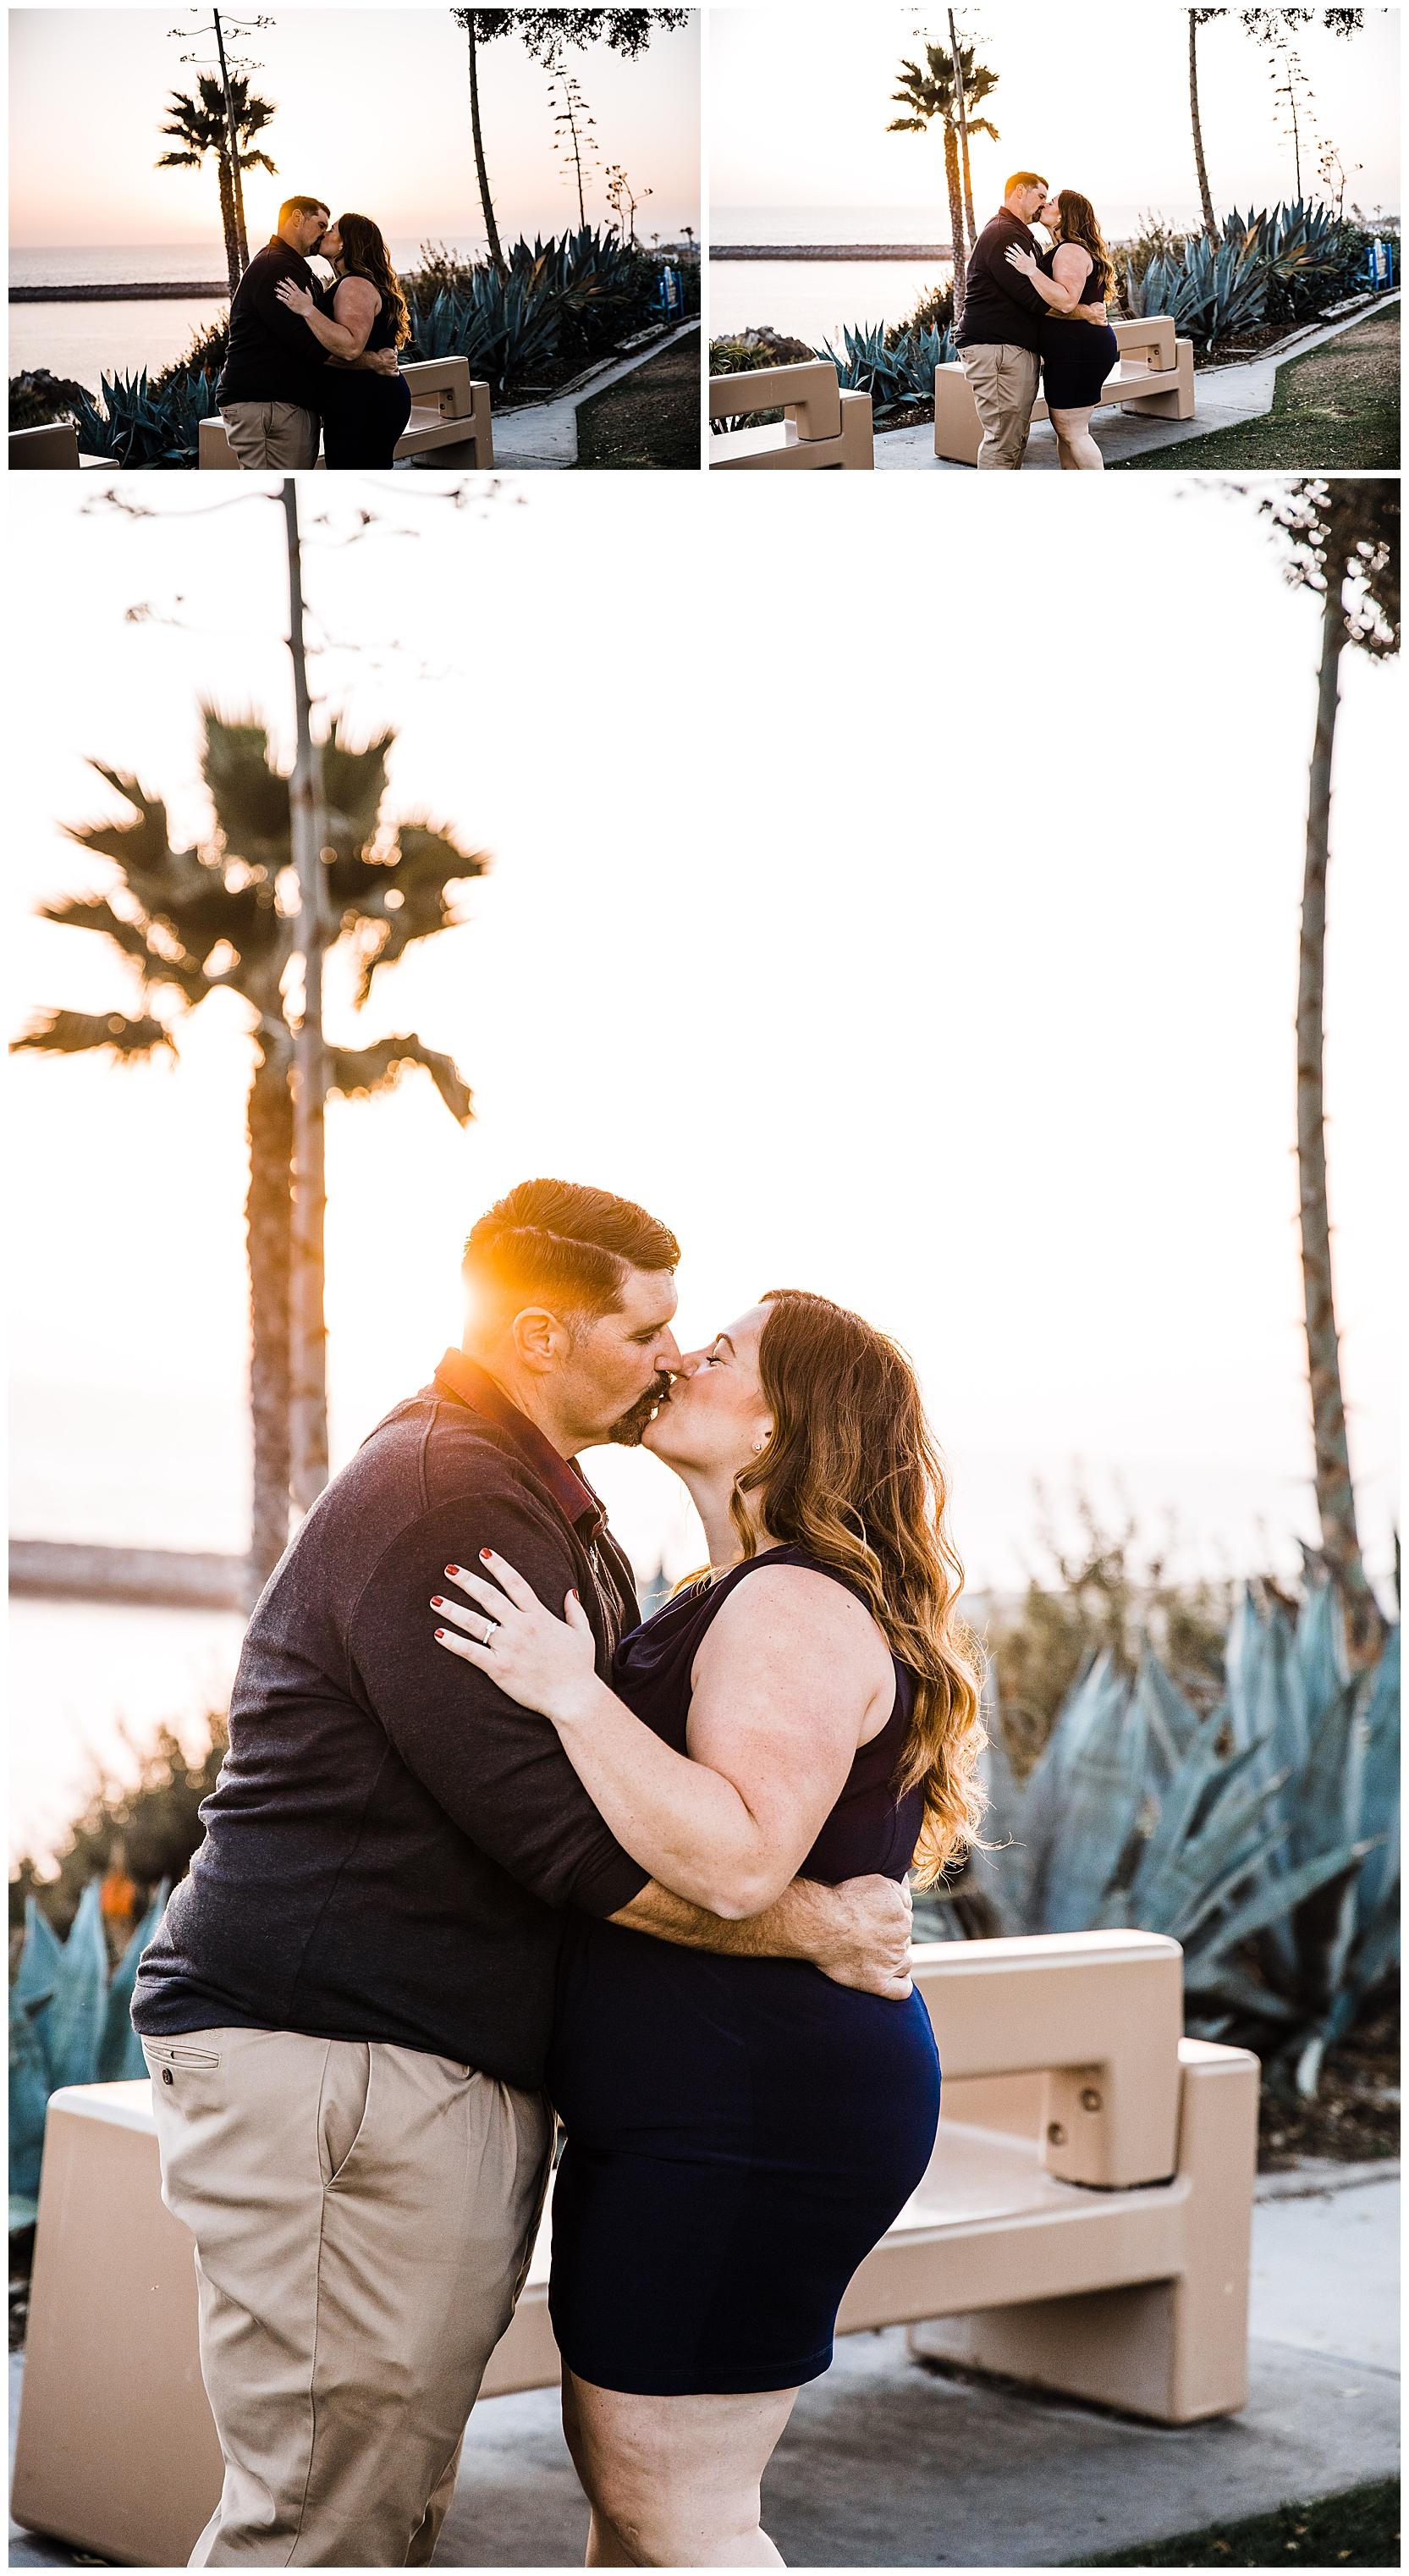 jessicafredericks_huntingtonbeach_proposal_sunset_engagement_0026.jpg